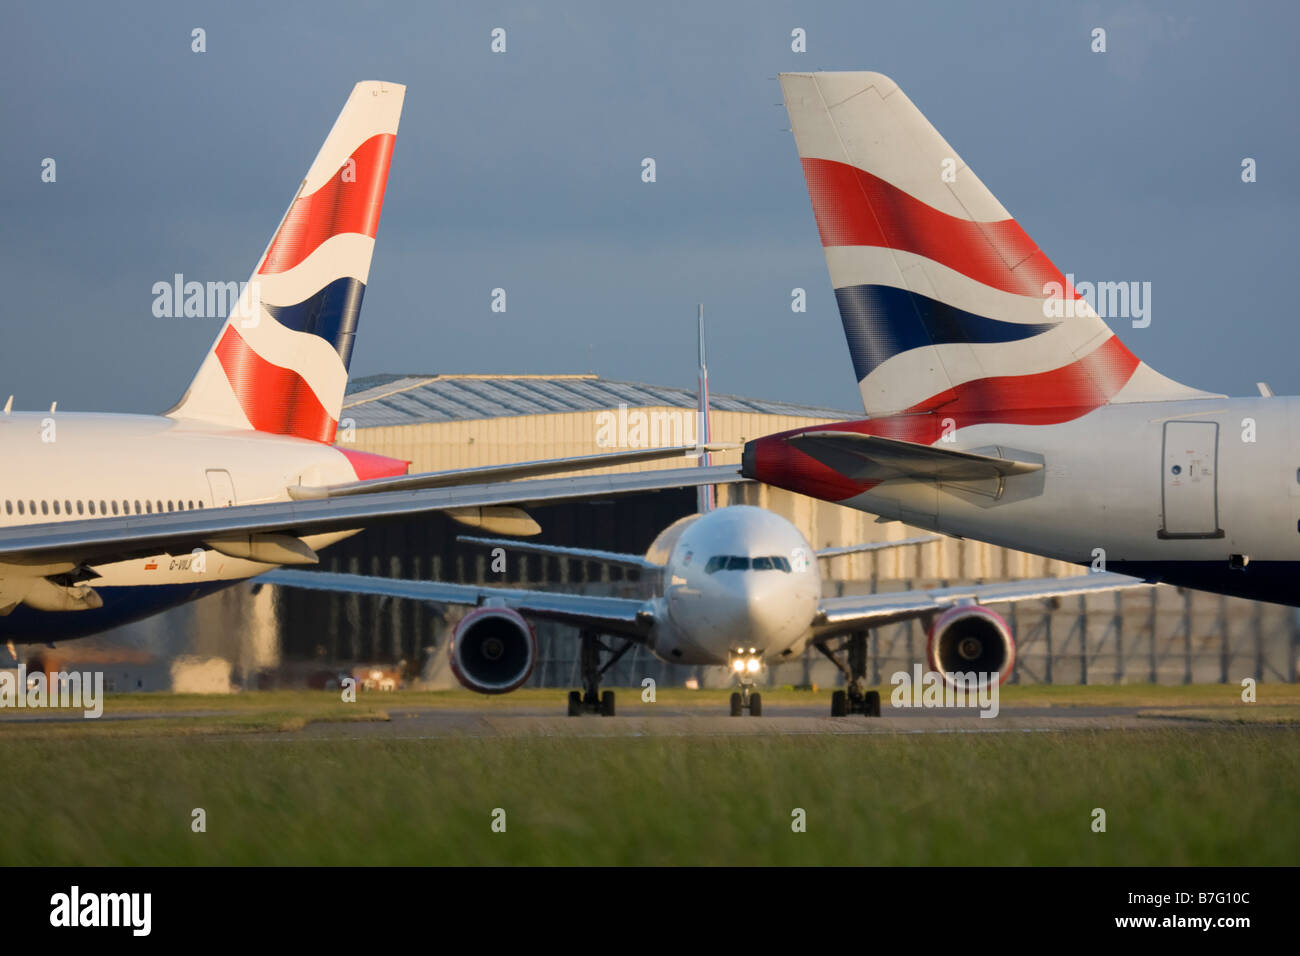 Tails of British Airways planes at London Heathrow airport. Stock Photo